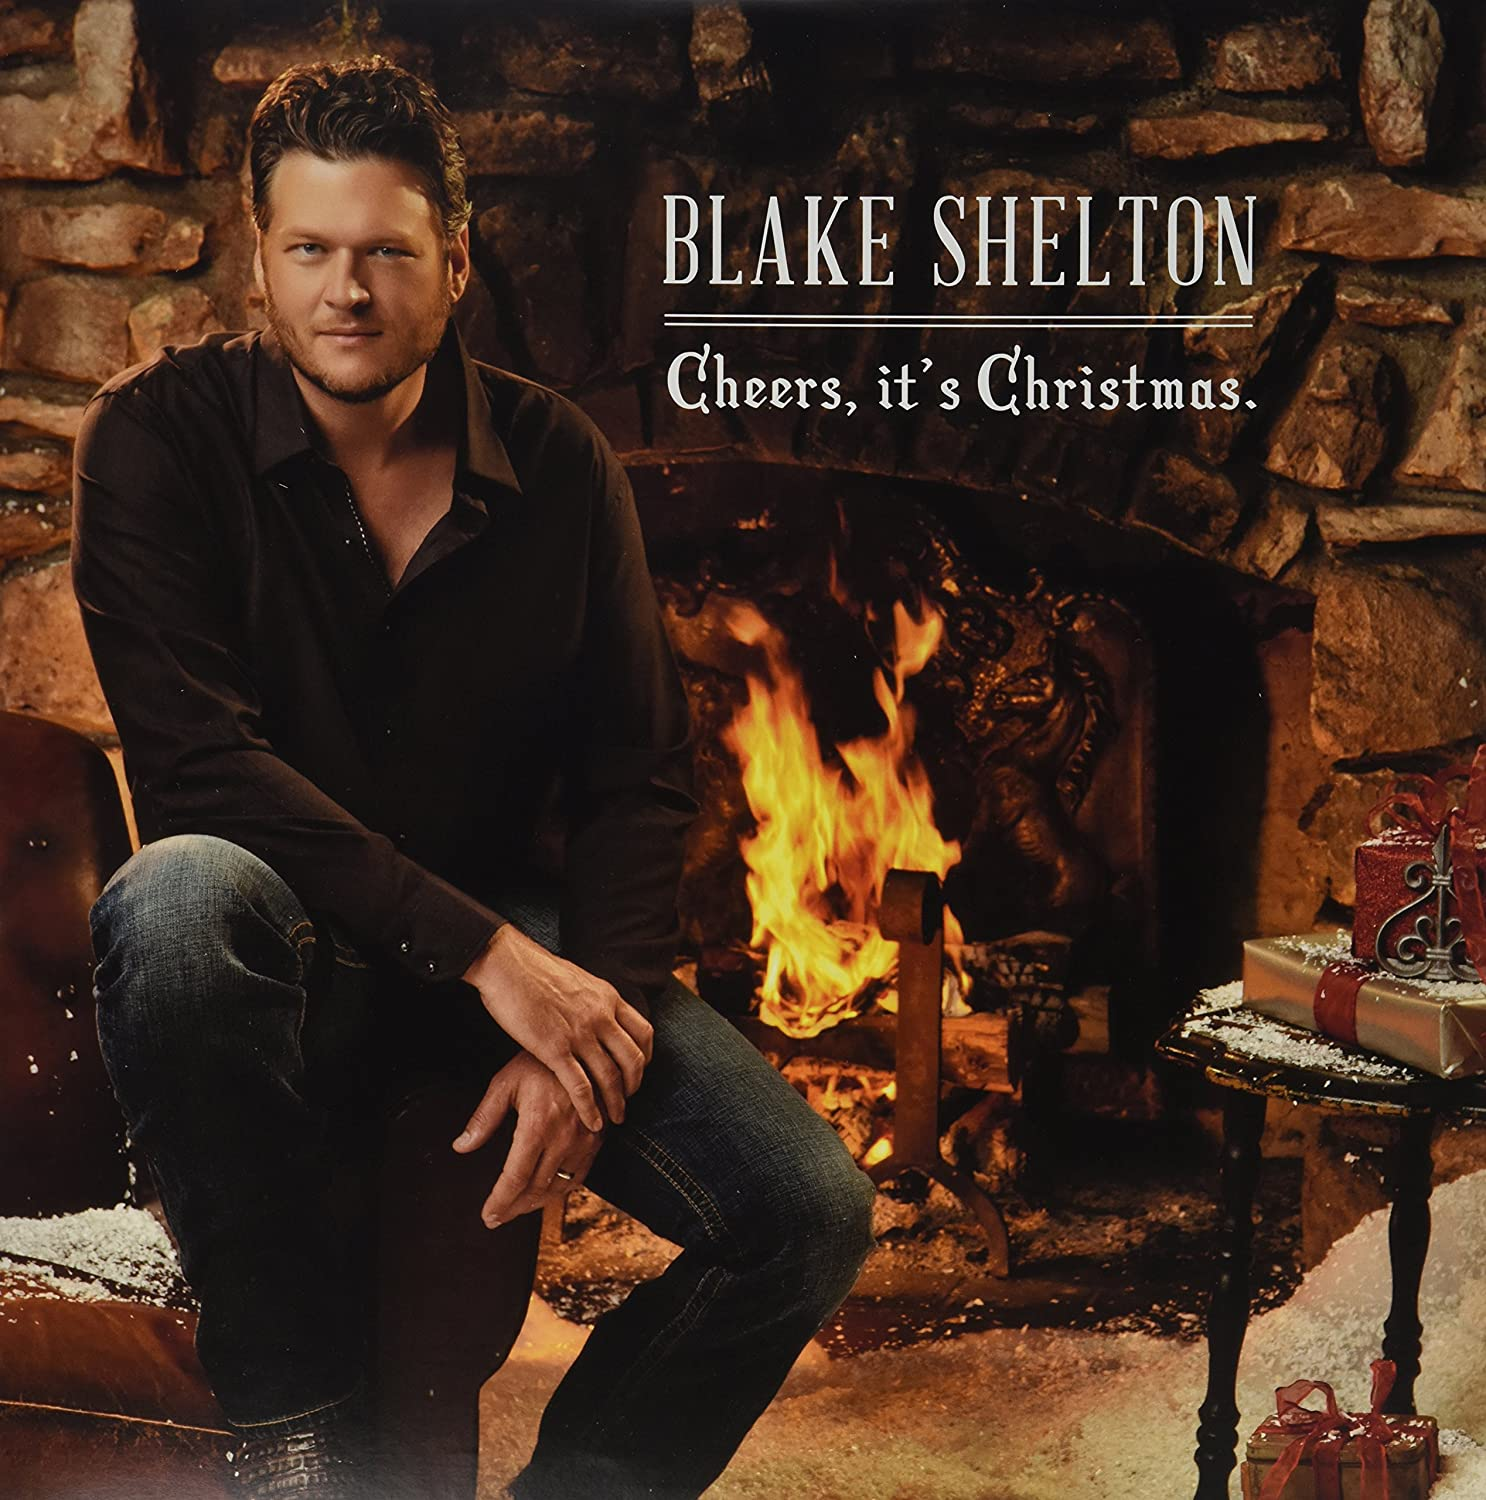 Blake Shelton Cheers Its Christmas.Cheers It S Christmas